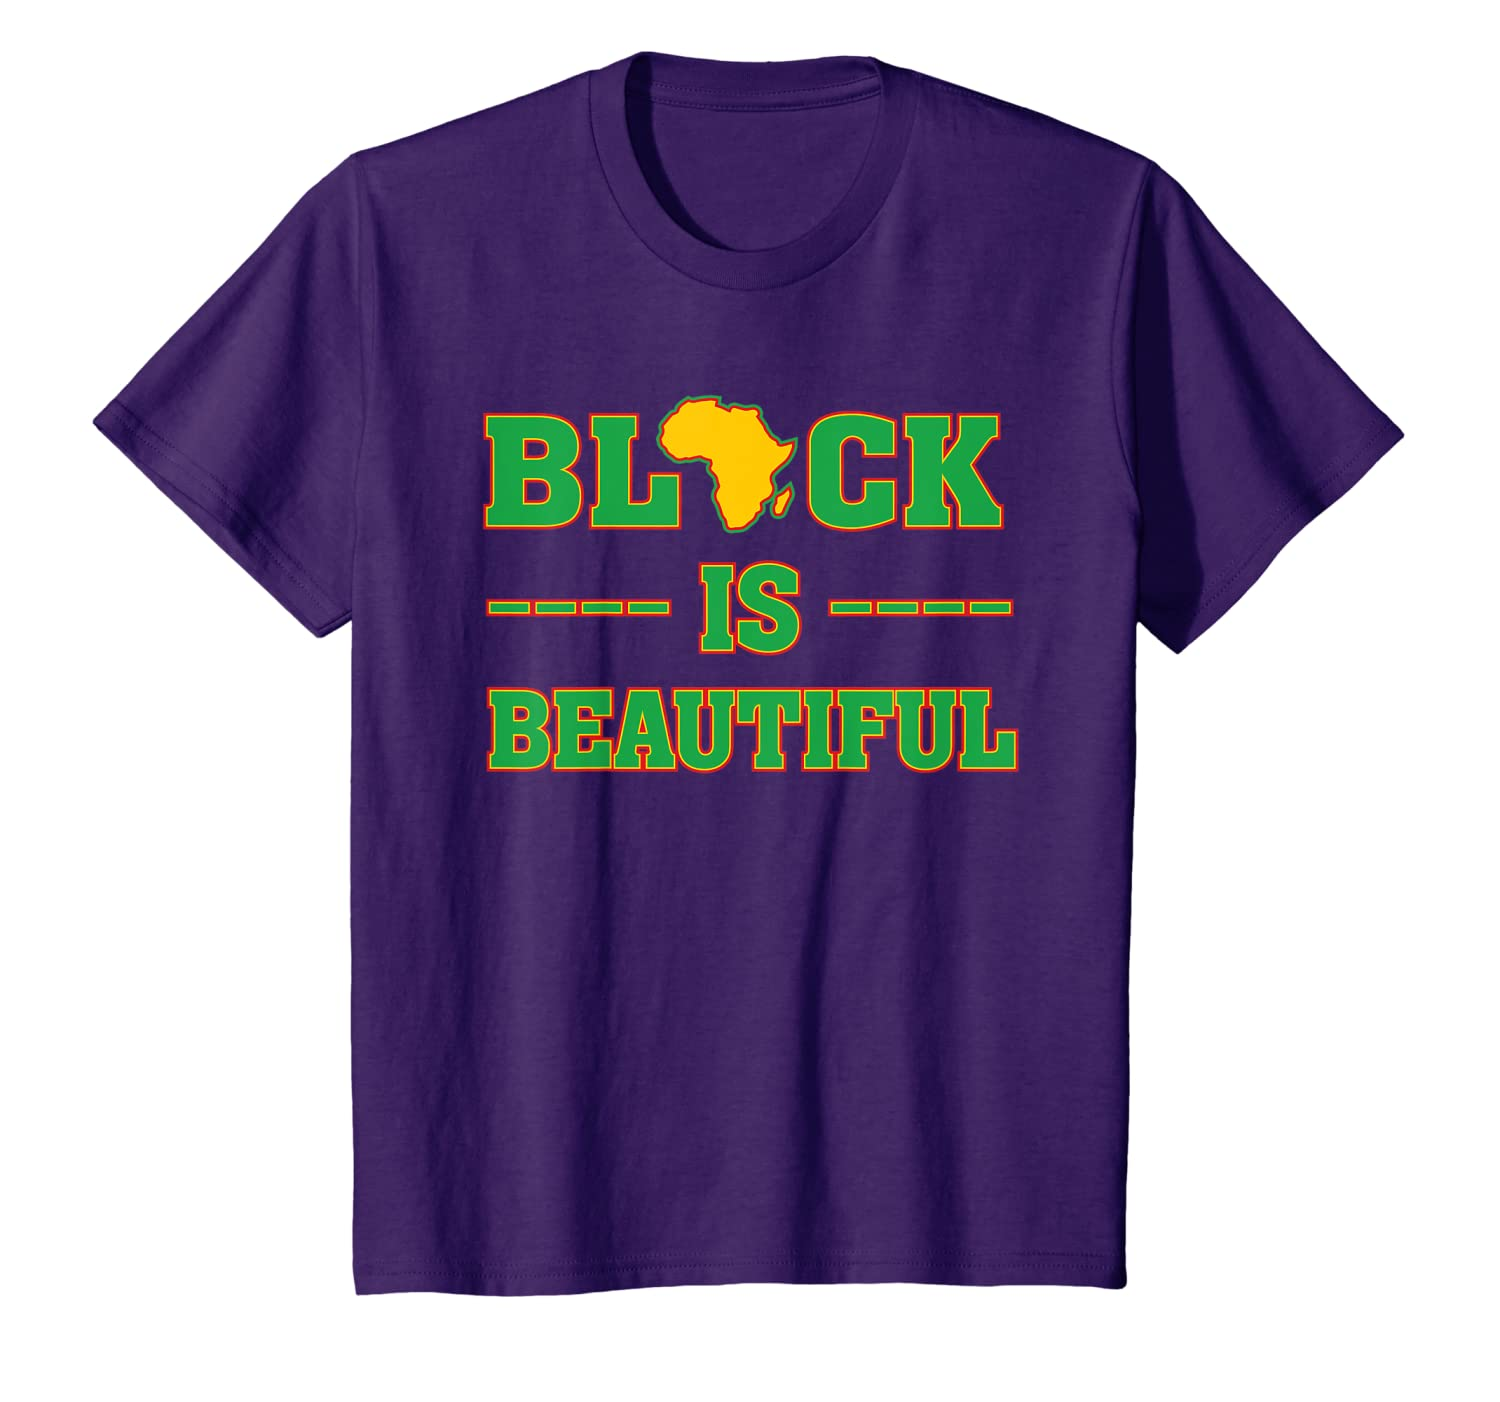 Black is Beautiful – Africa – African American History Month T-Shirt